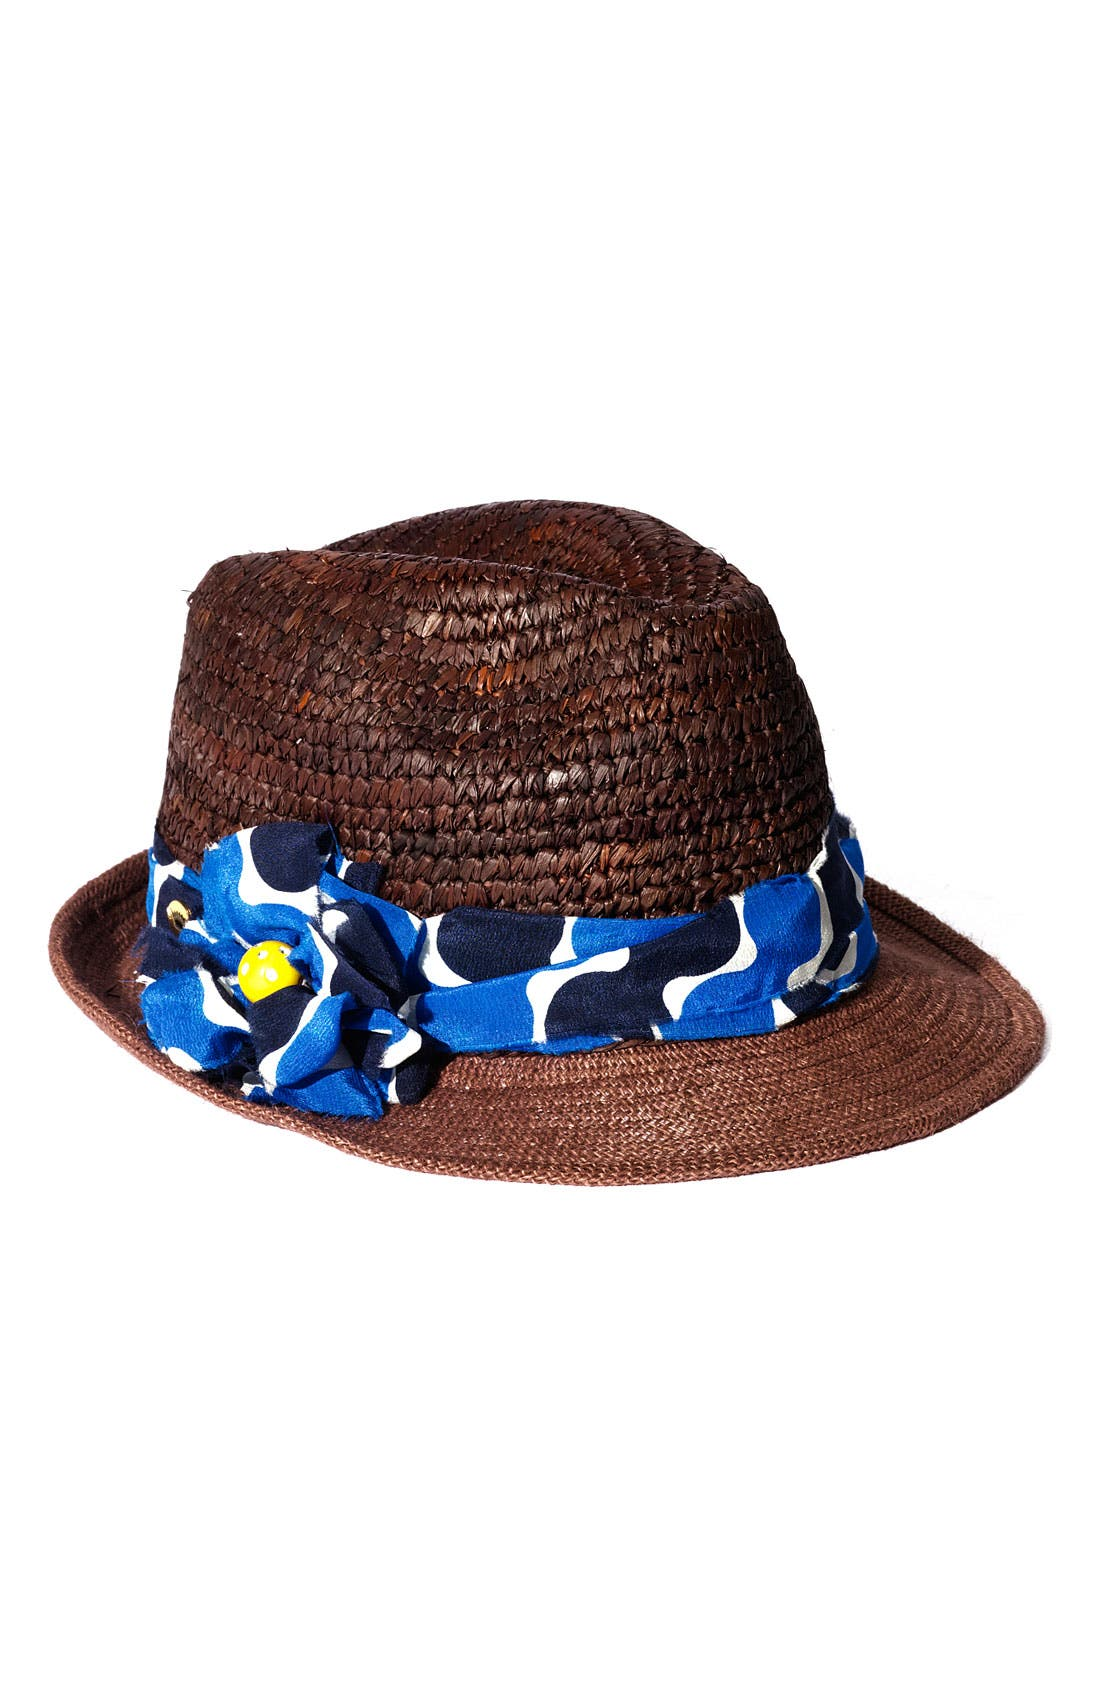 Main Image - Juicy Couture Straw and Burlap Fedora